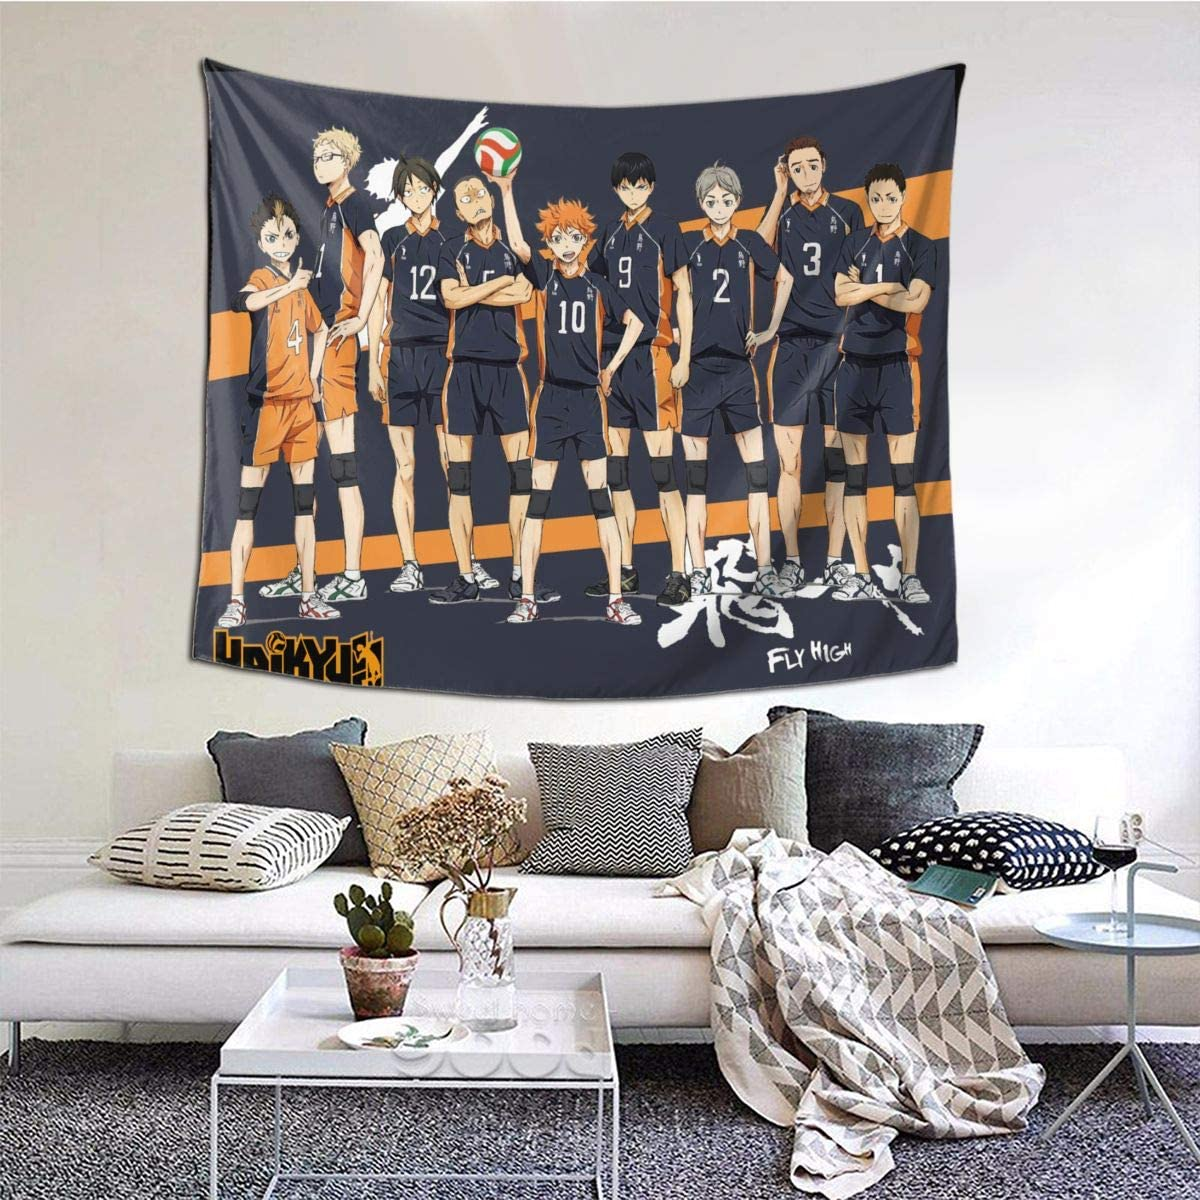 Haikyuu Tapestry Wall Hanging 3D Printing Tapestry Animetapestry for Dorm Living Room Bedroom 50x60in